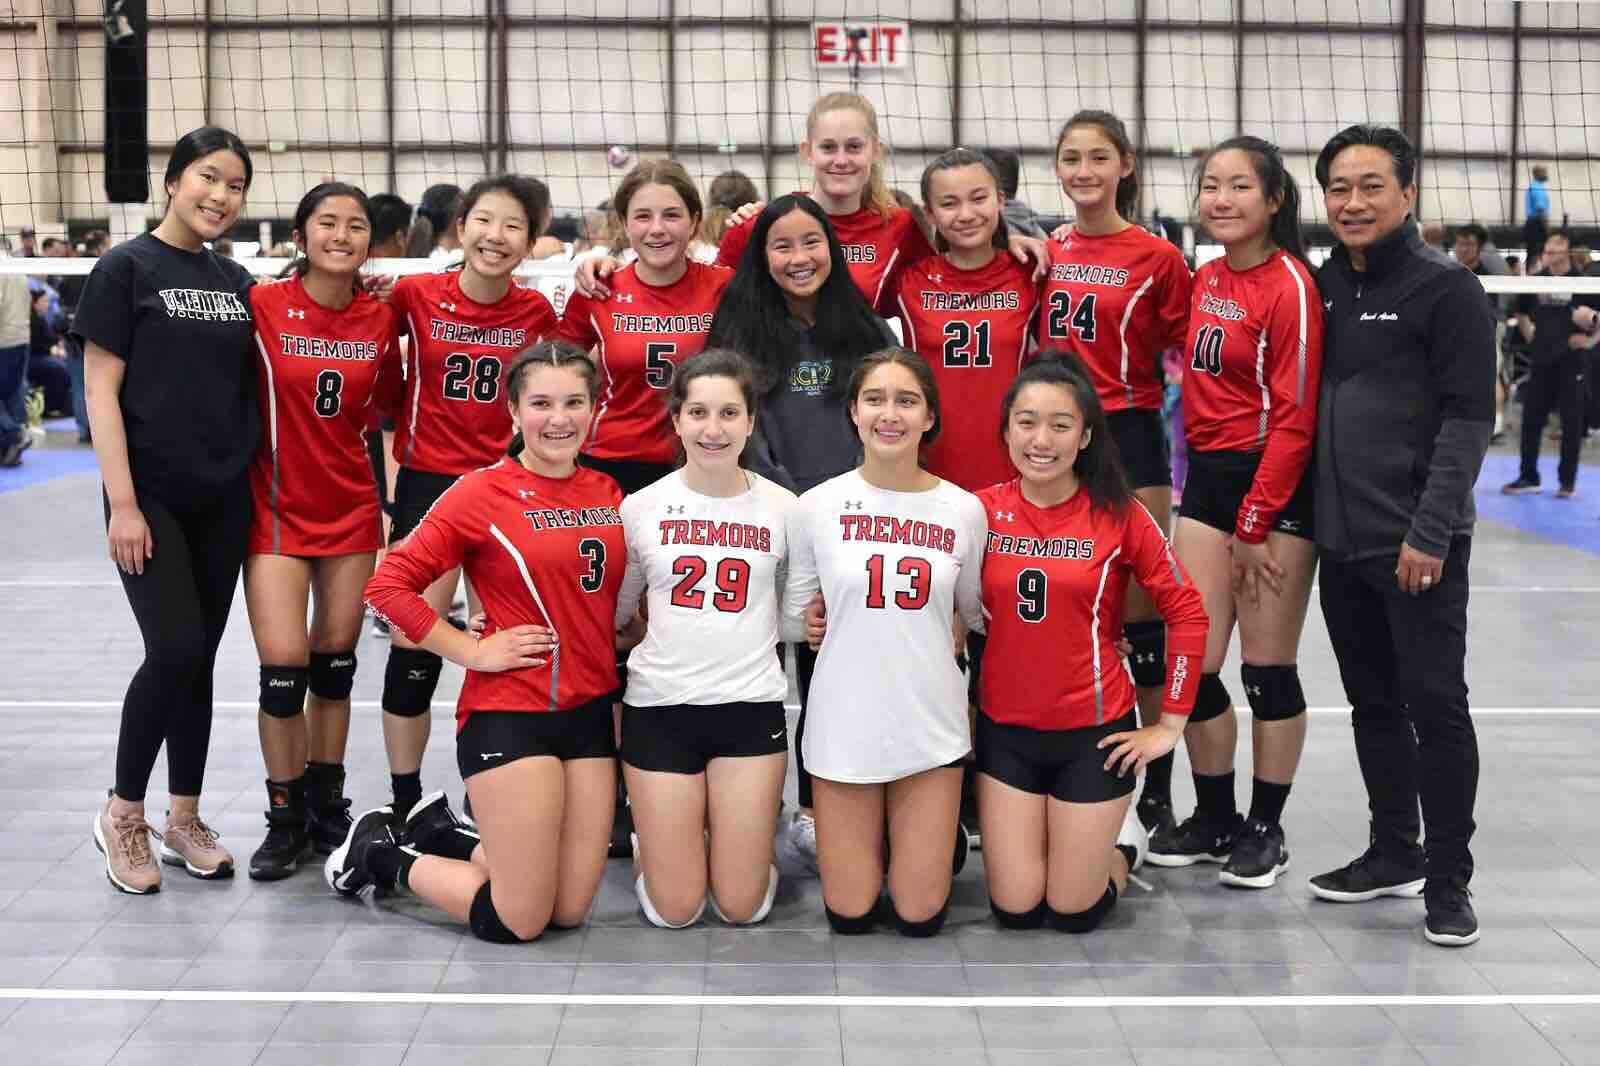 Fundraiser By 15 2 Palkons Co Beatriz Cansino Sf Tremors 14 2 Tigers Volleyball Team